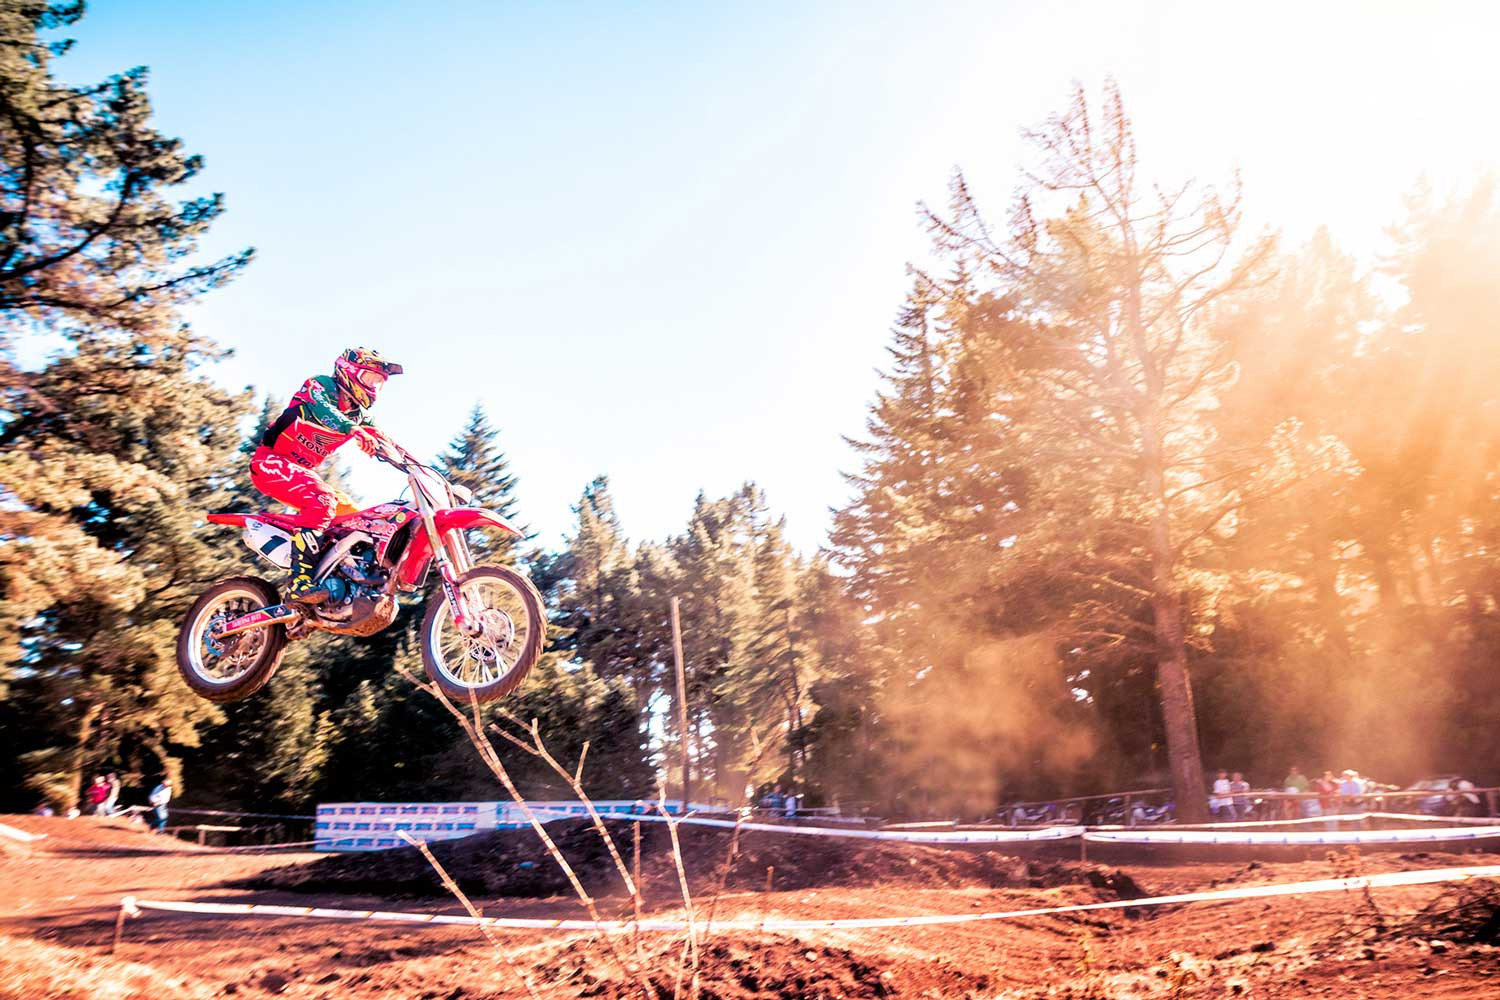 A Rider jumping his Honda CRF 450